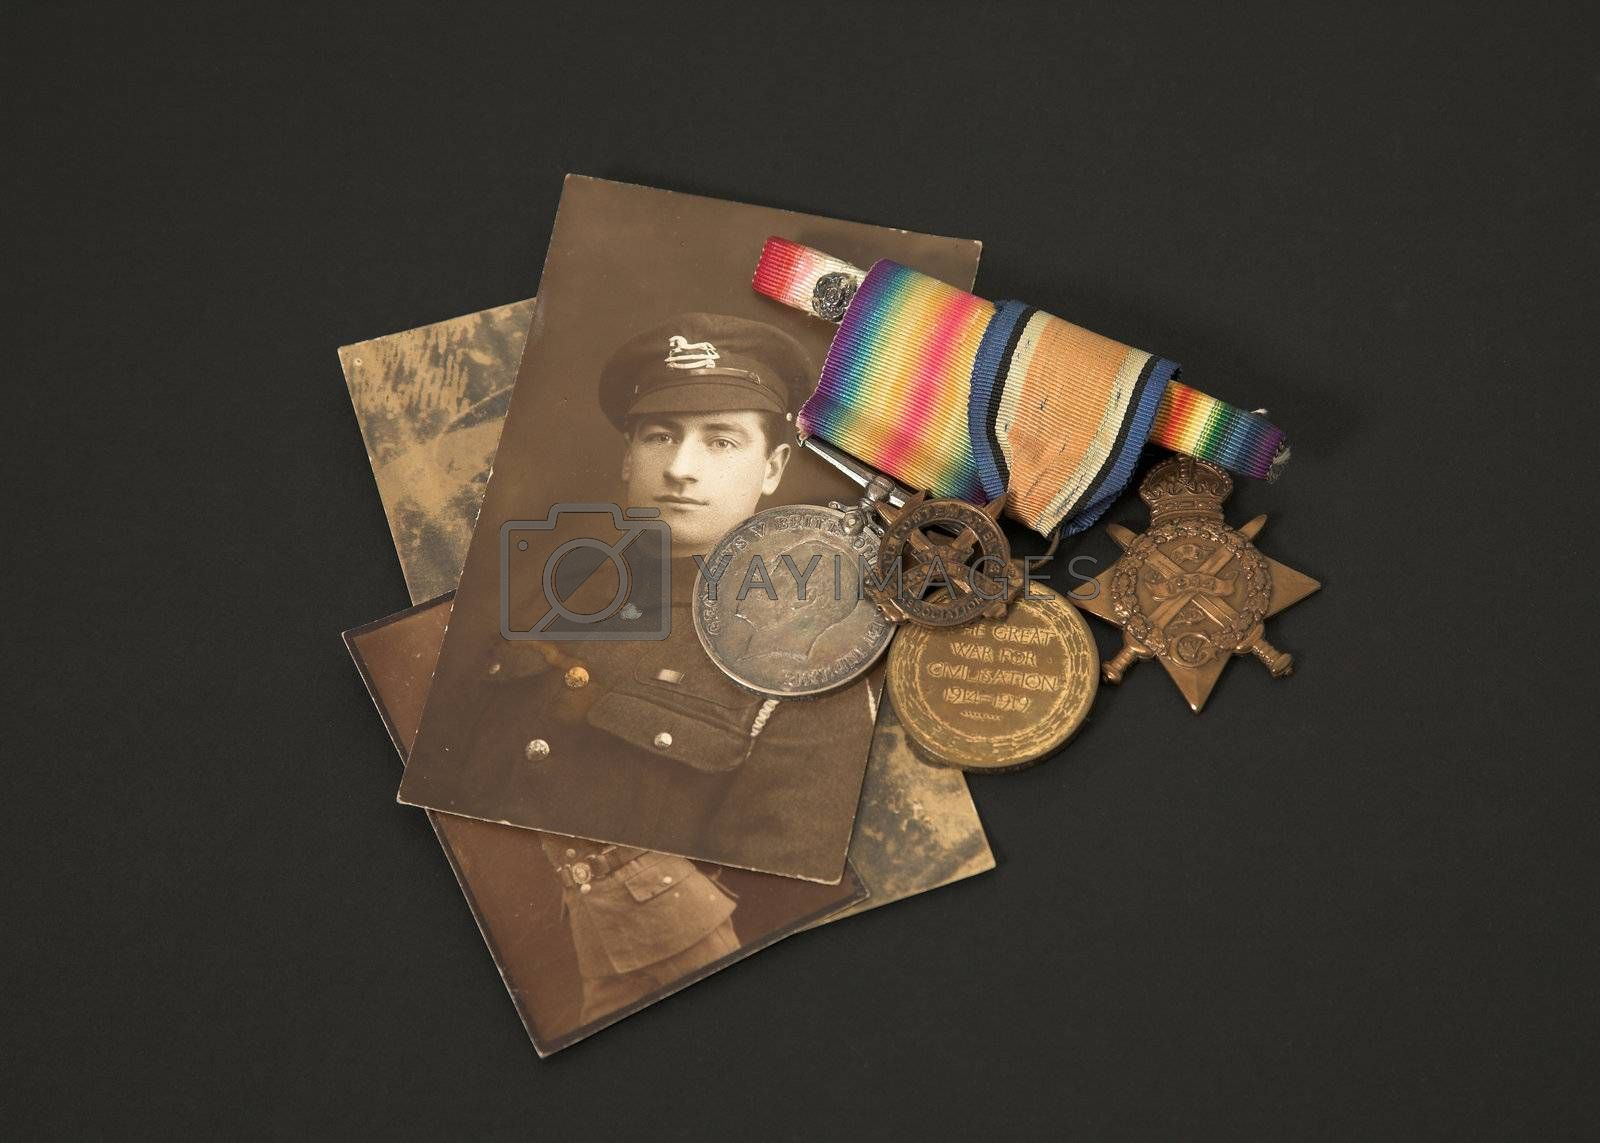 Photograph and medals of a Great War veteran